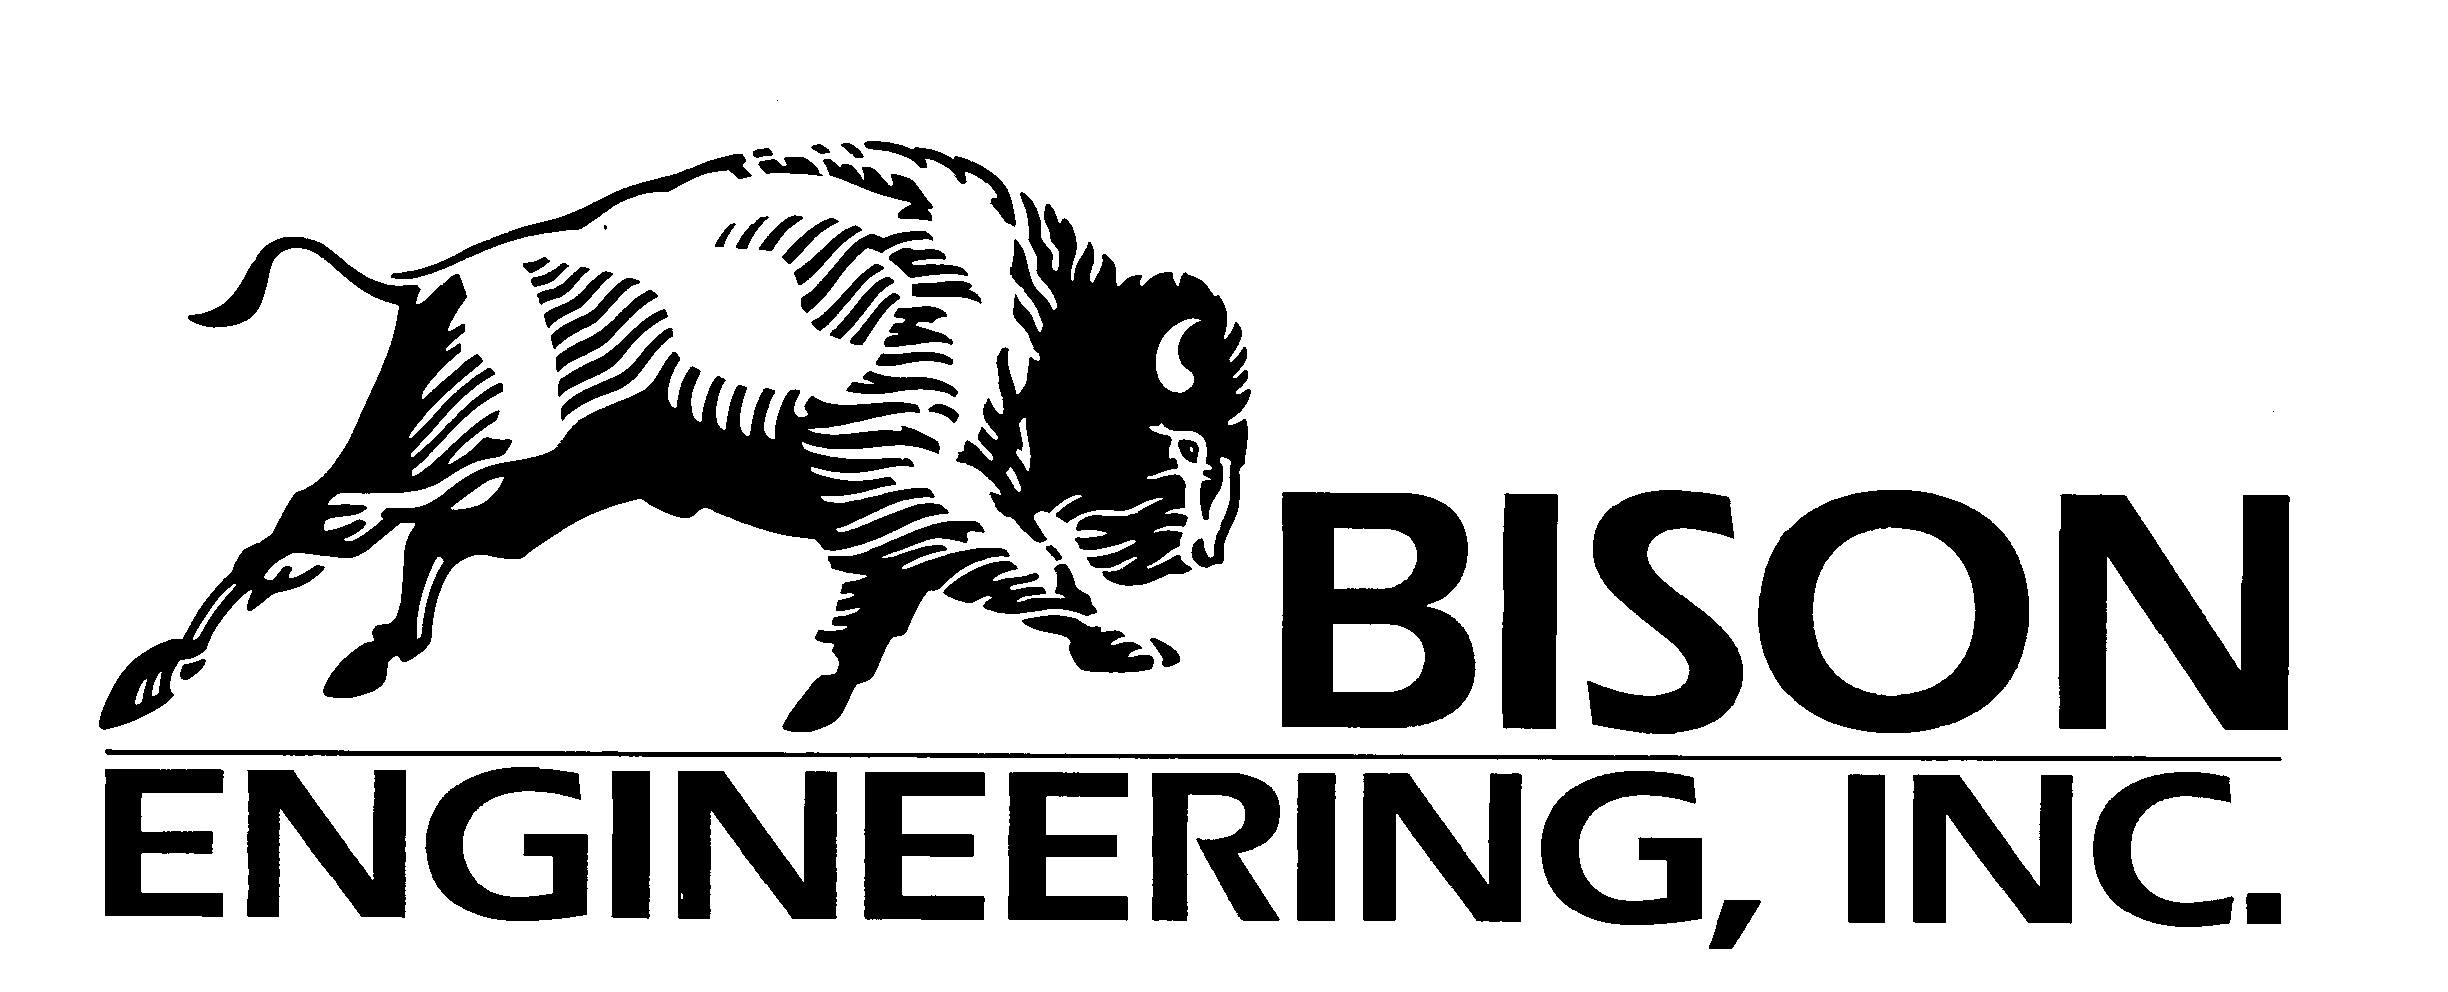 Bison Engineering Inc logo